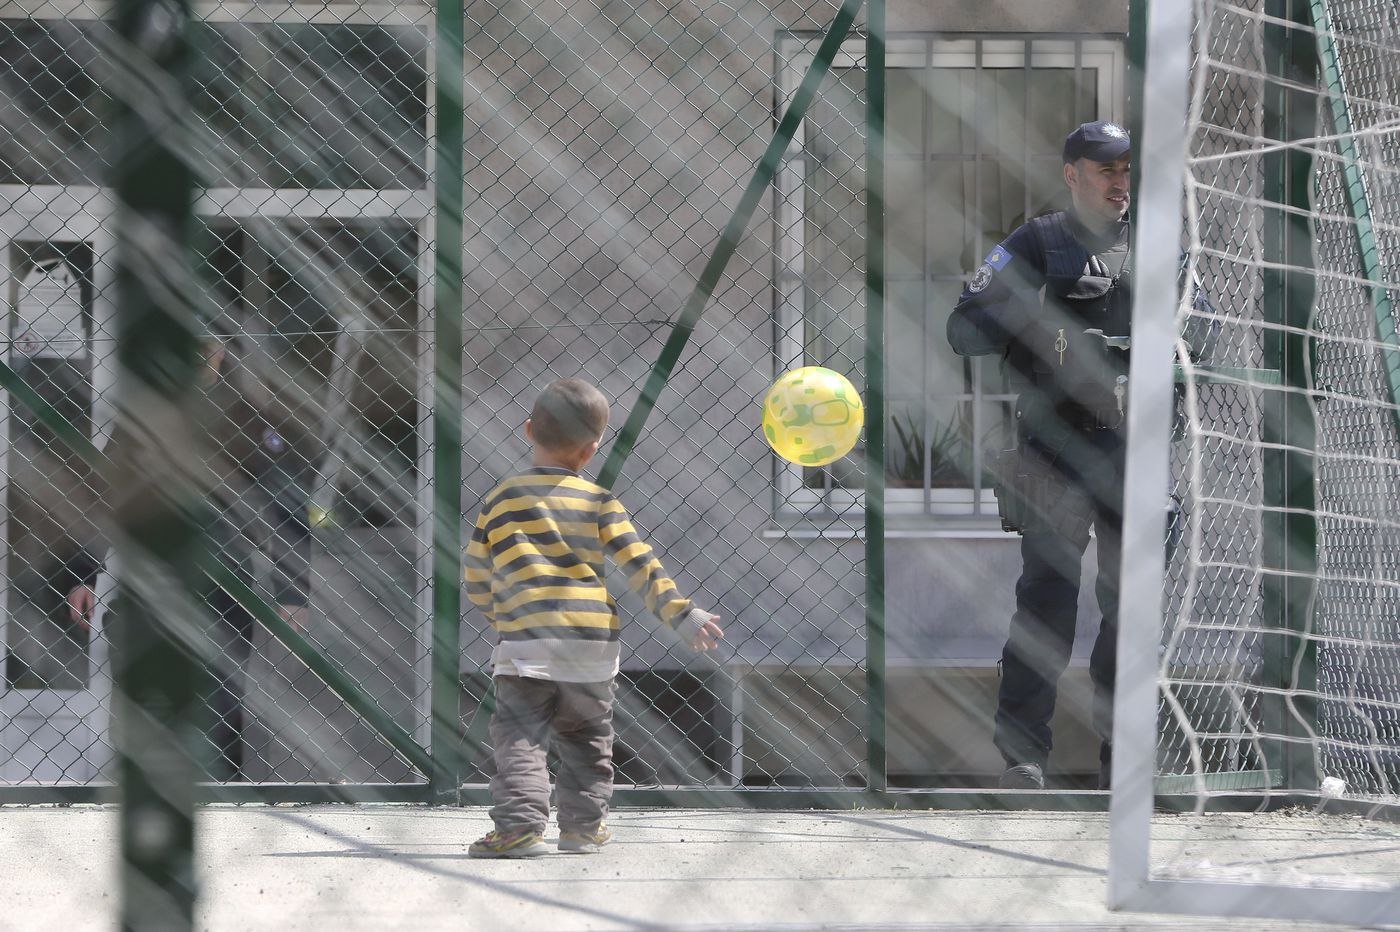 Detained children should be released, not used as political pawns | Christine Flowers